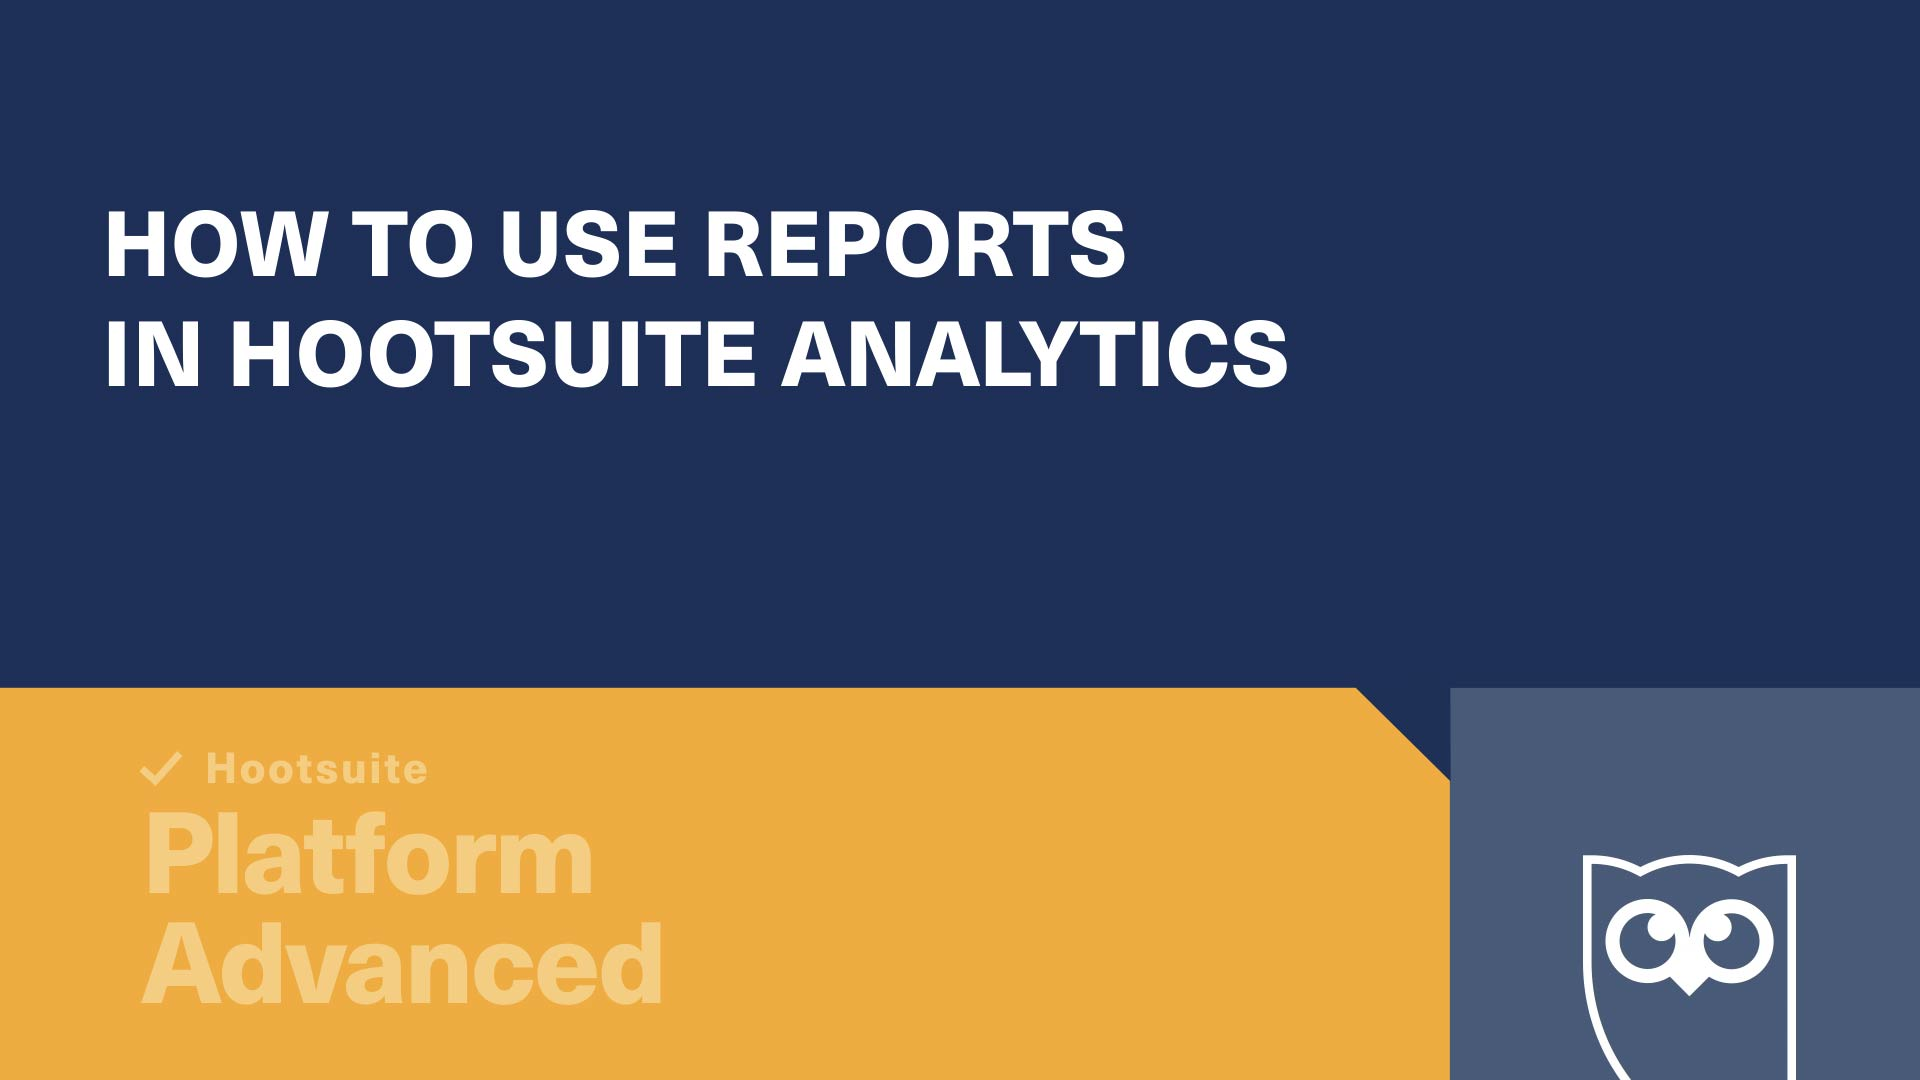 How to use reports in Hootsuite Analytics video